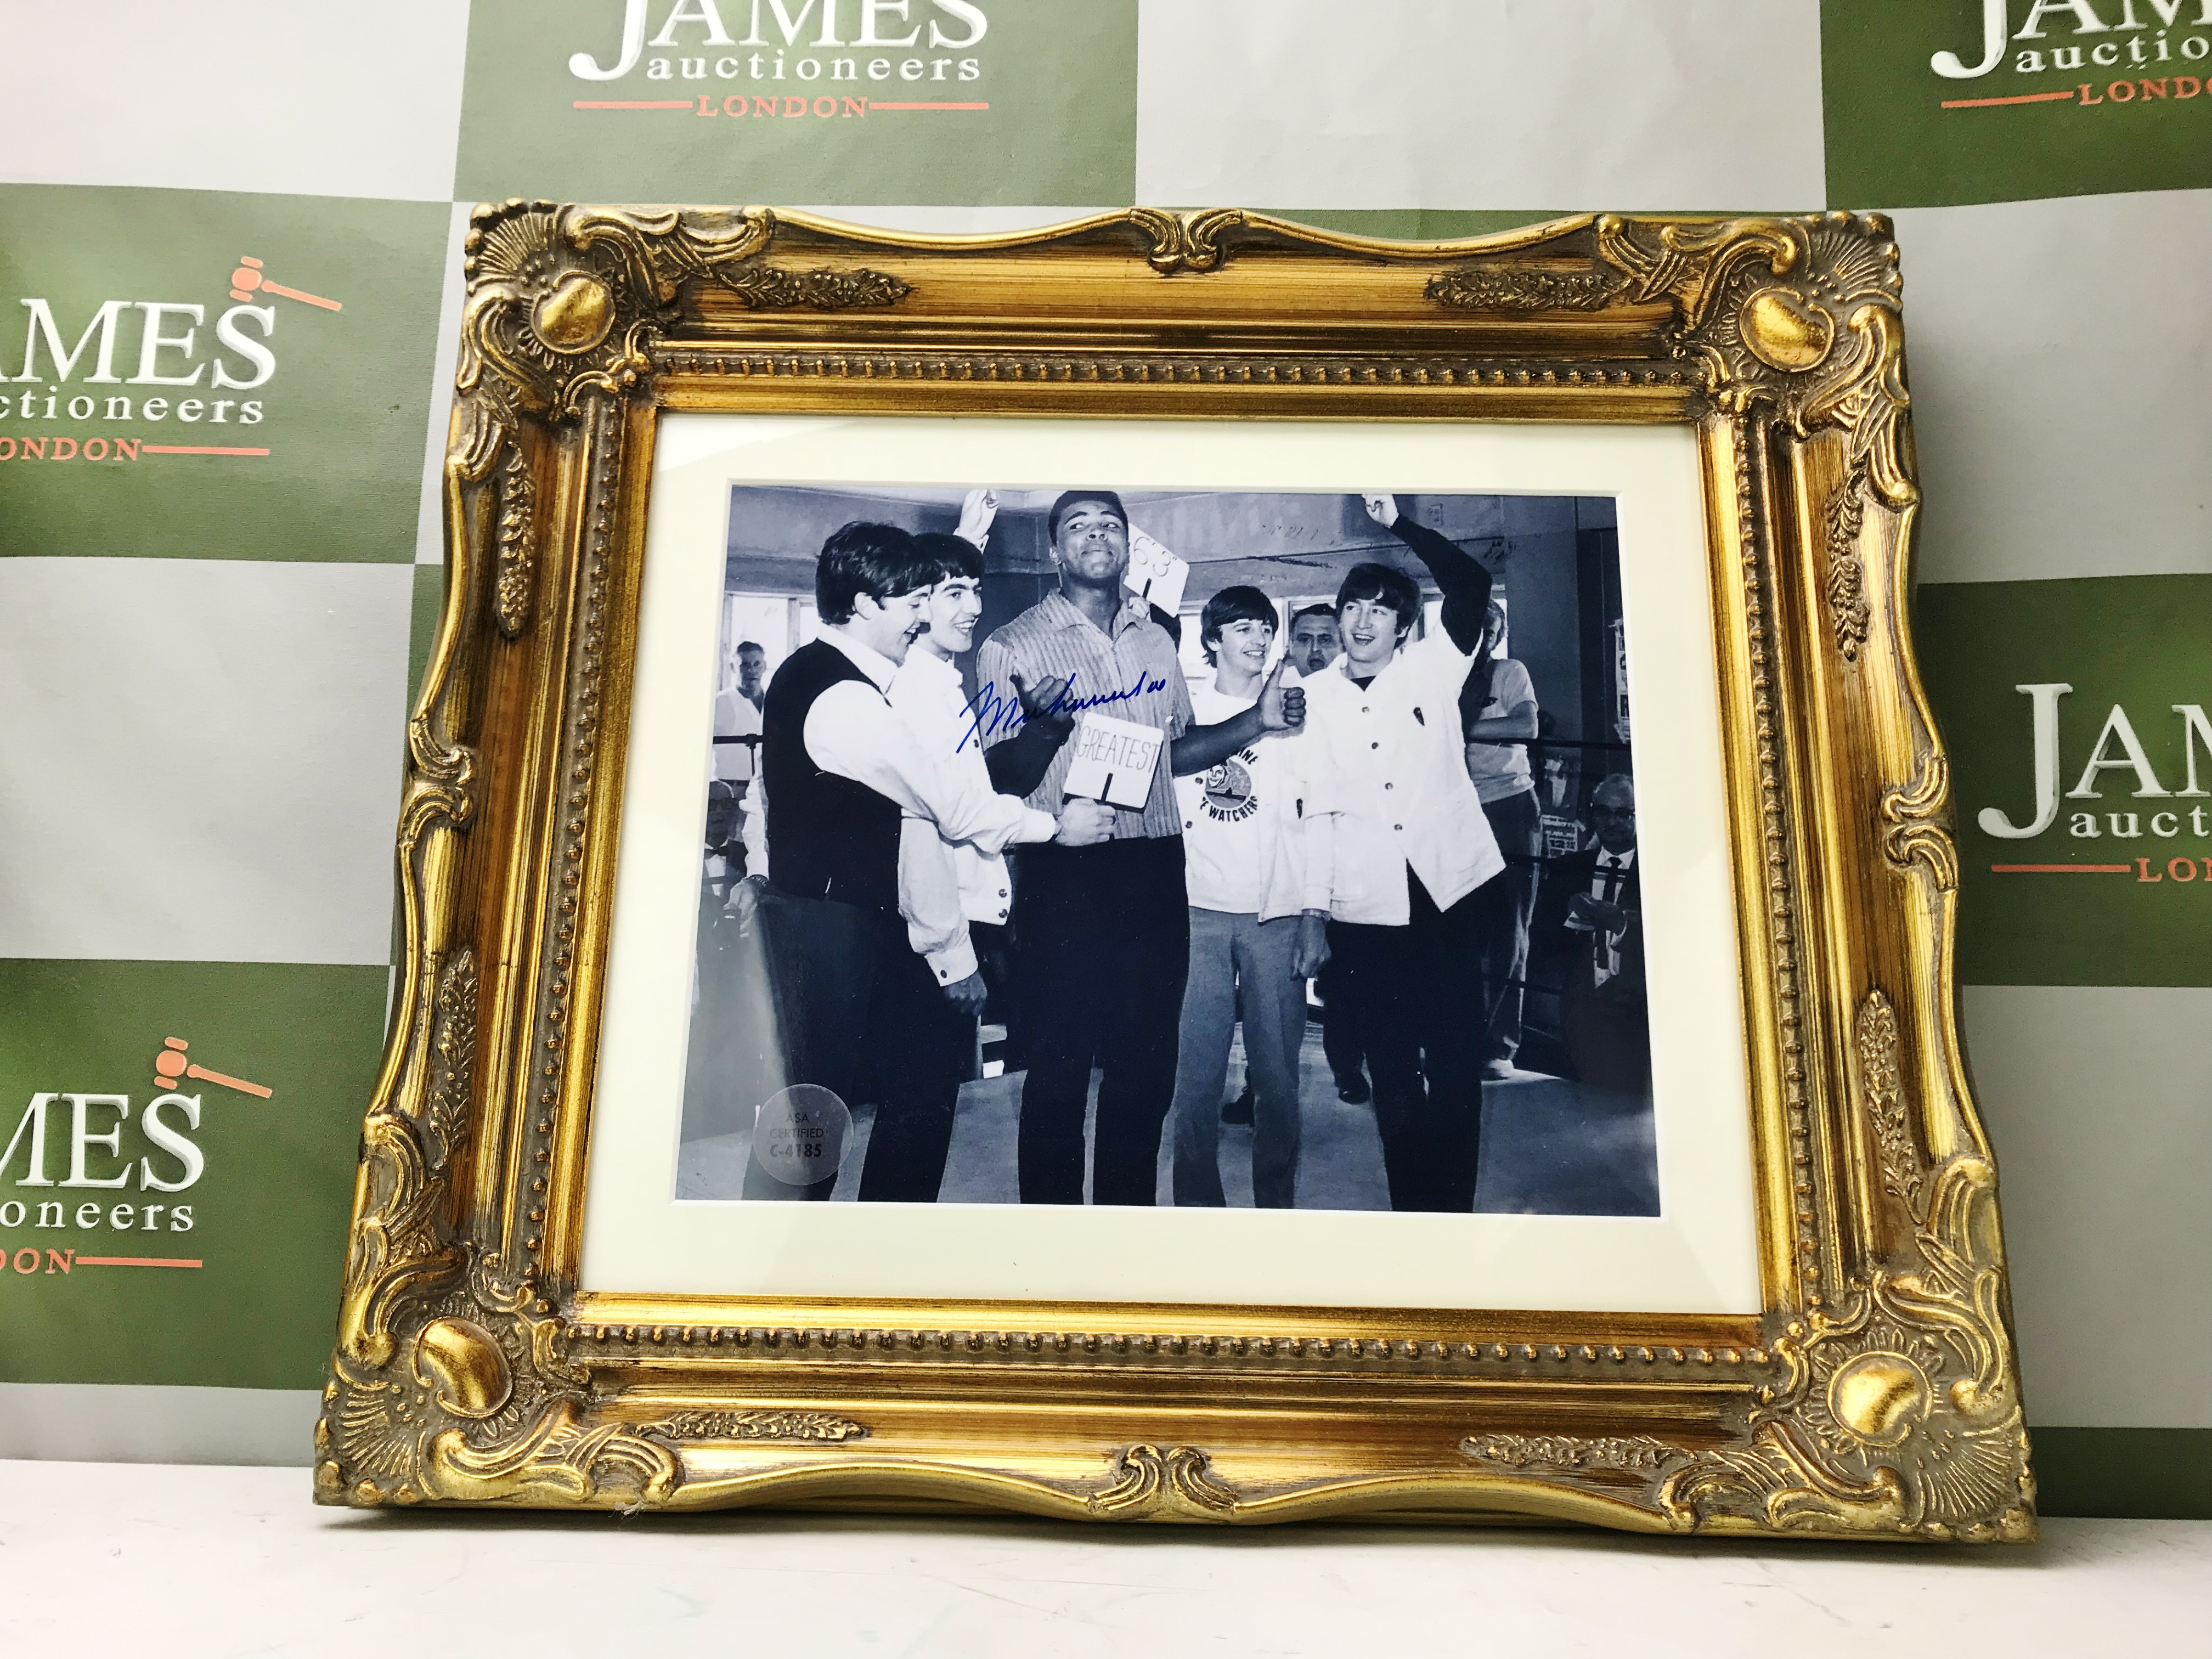 Lot 59 - Muhammad Ali & The Beatles Signed Montage -Ornate Framed